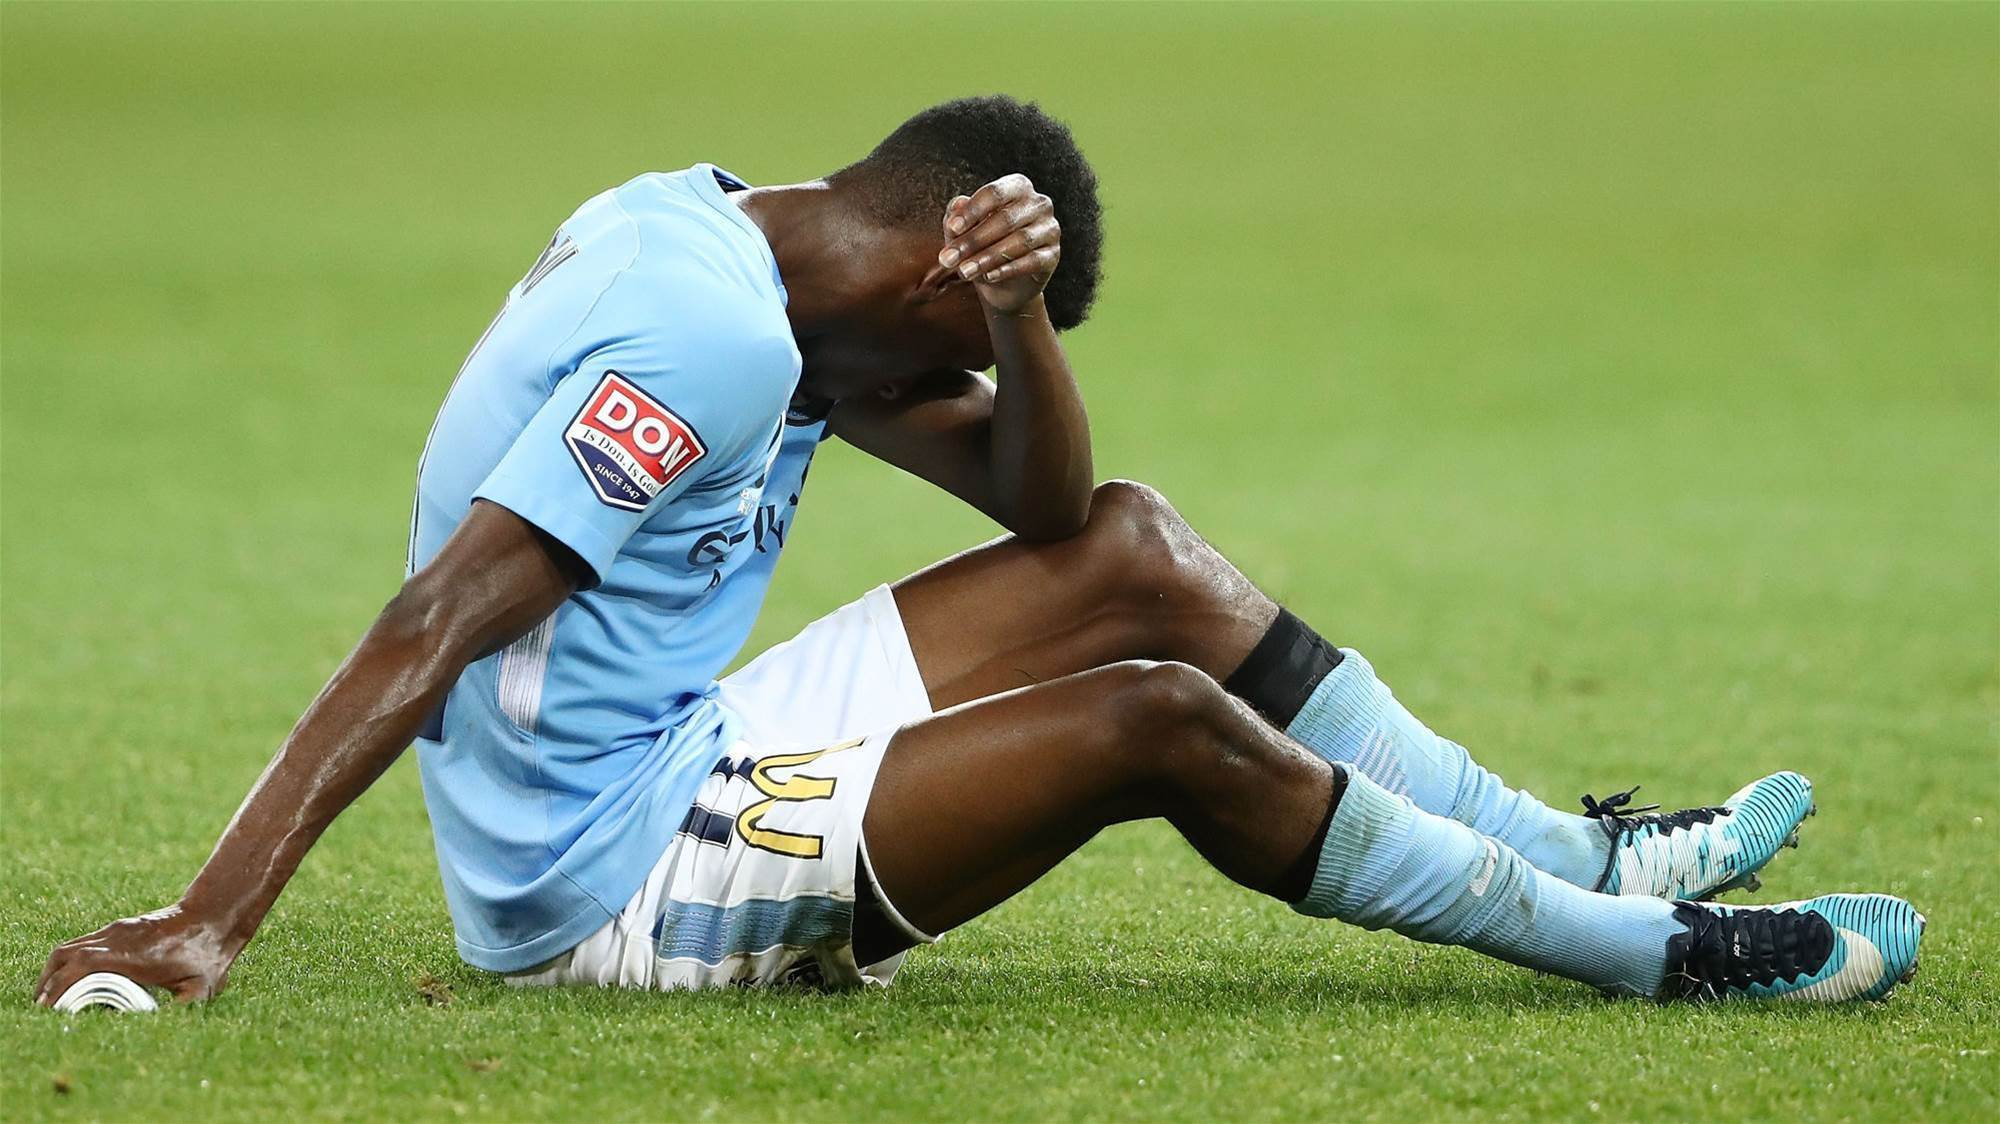 """I feel really s**t"" - Melbourne City draw against Western Sydney Wanderers"